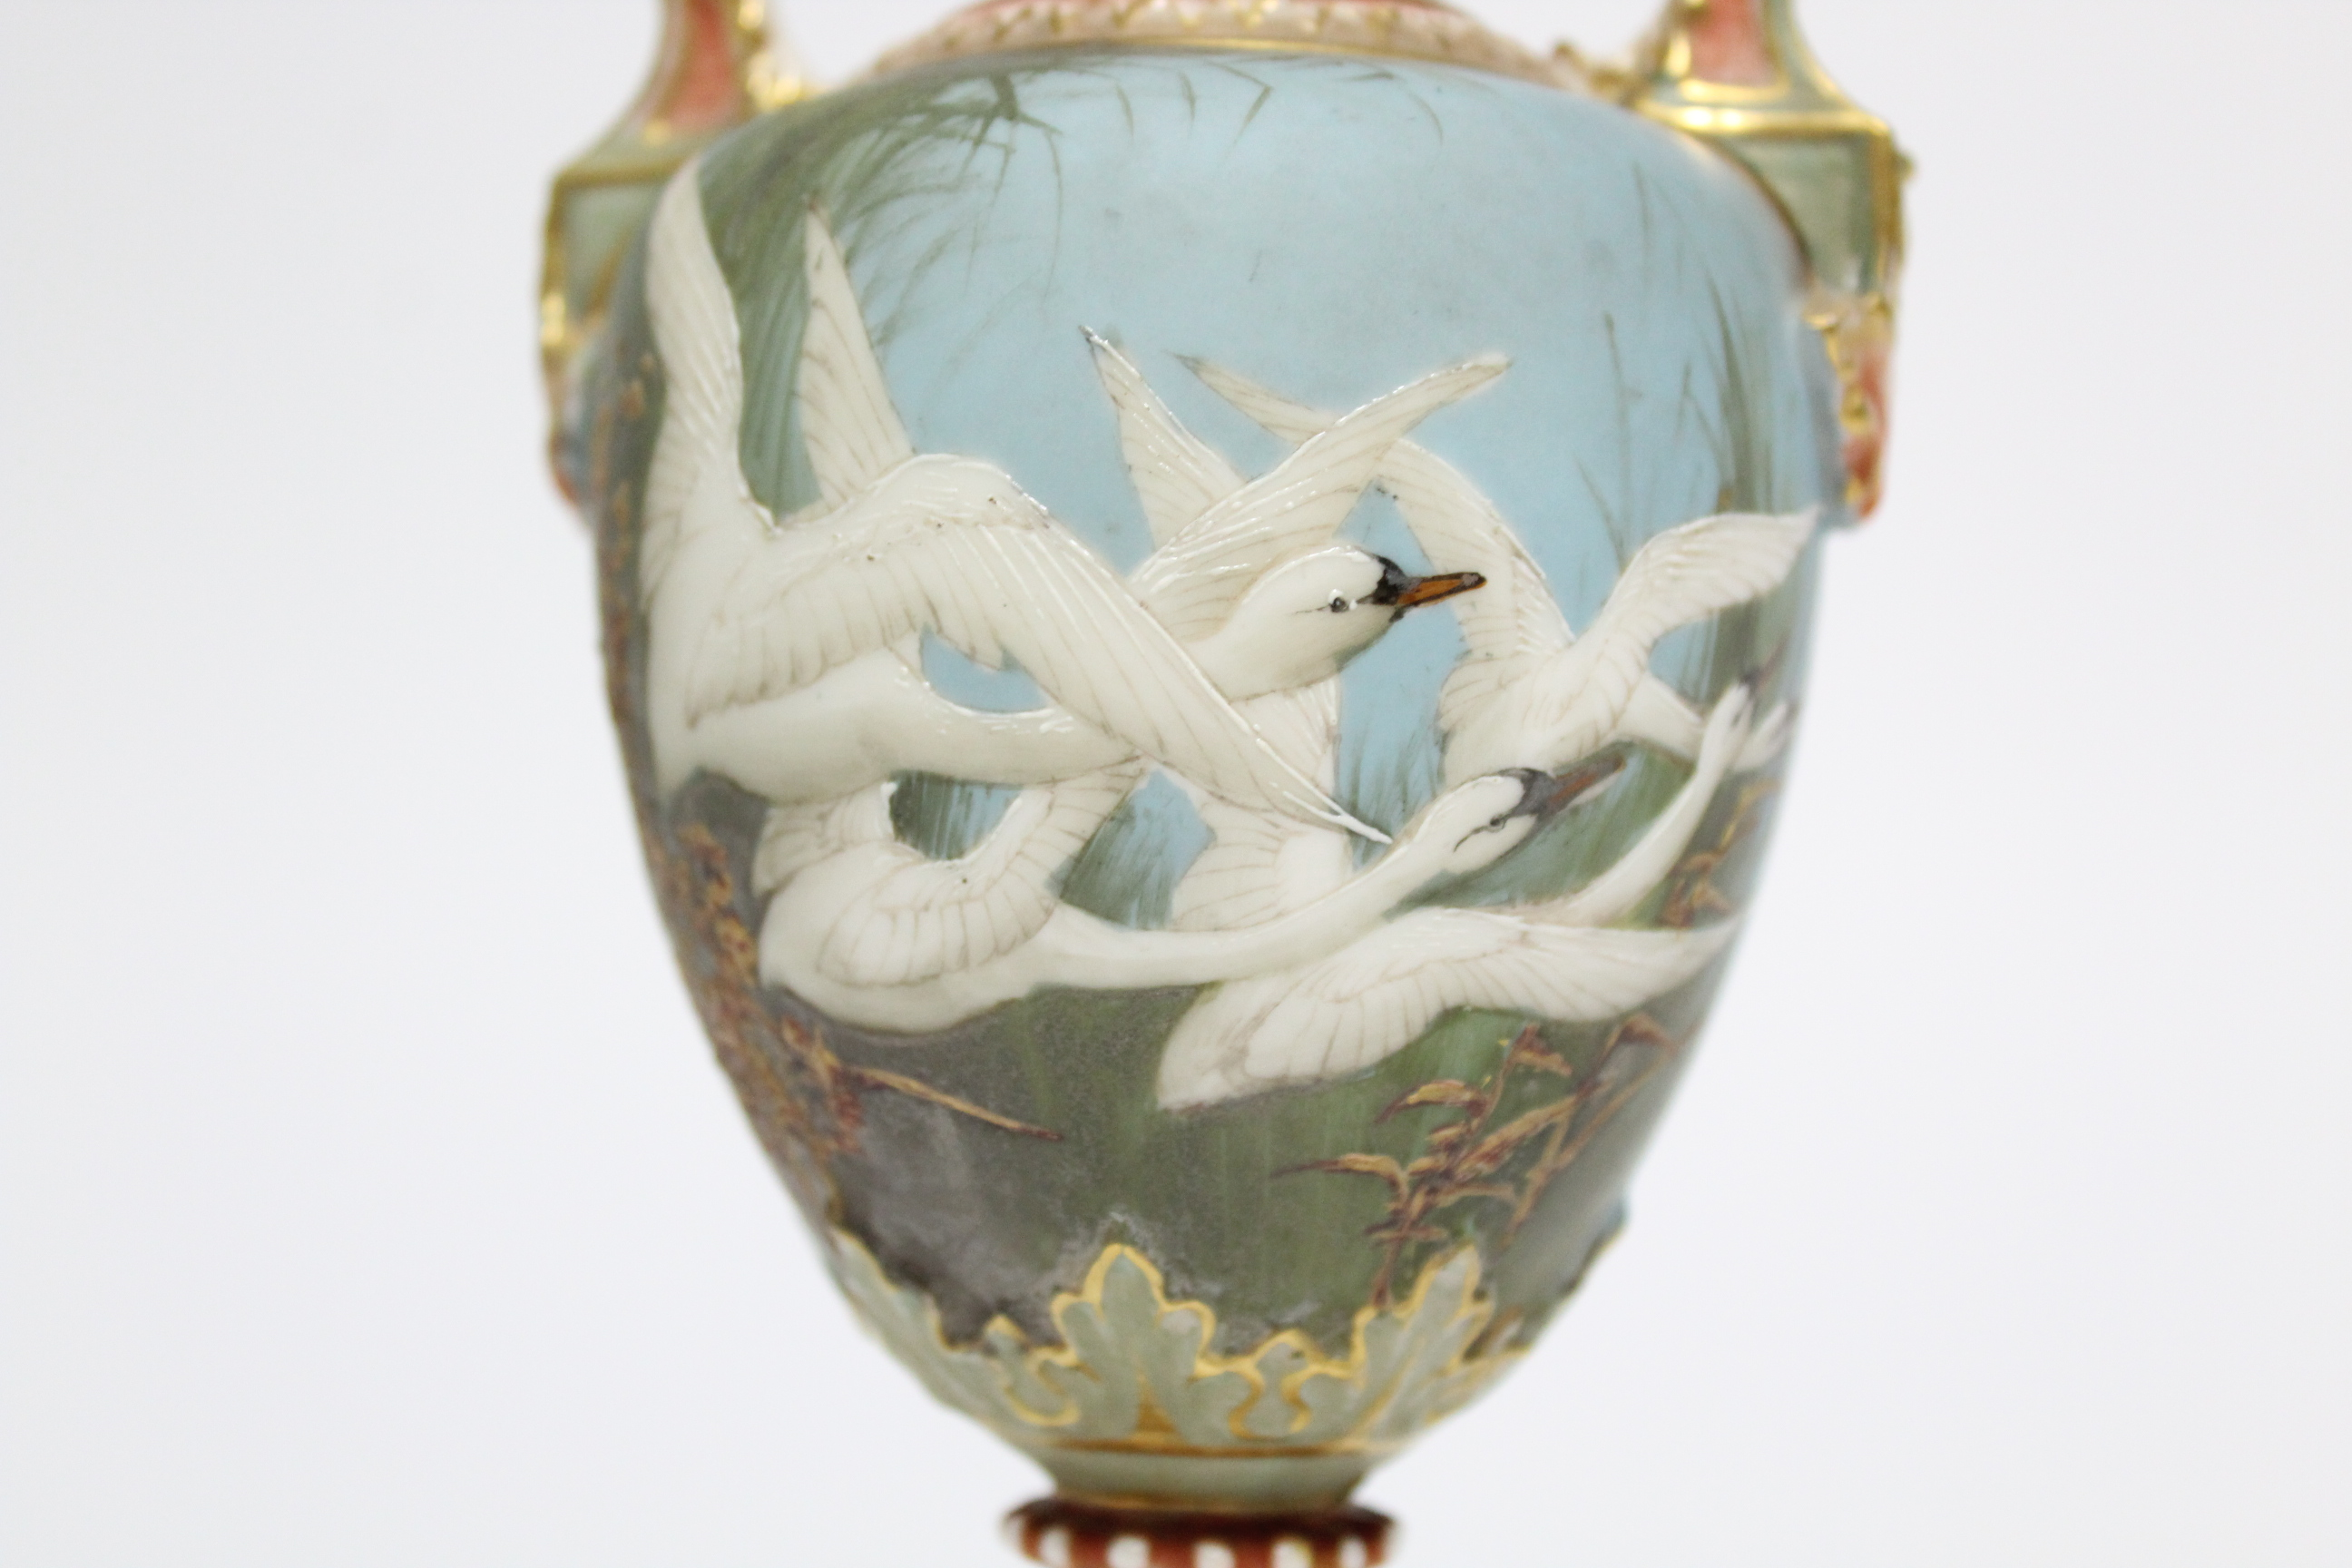 Lot 59 - A Royal Worcester porcelain two-handled ovoid vase painted with swans in flight by C. H. C. BALDWYN,